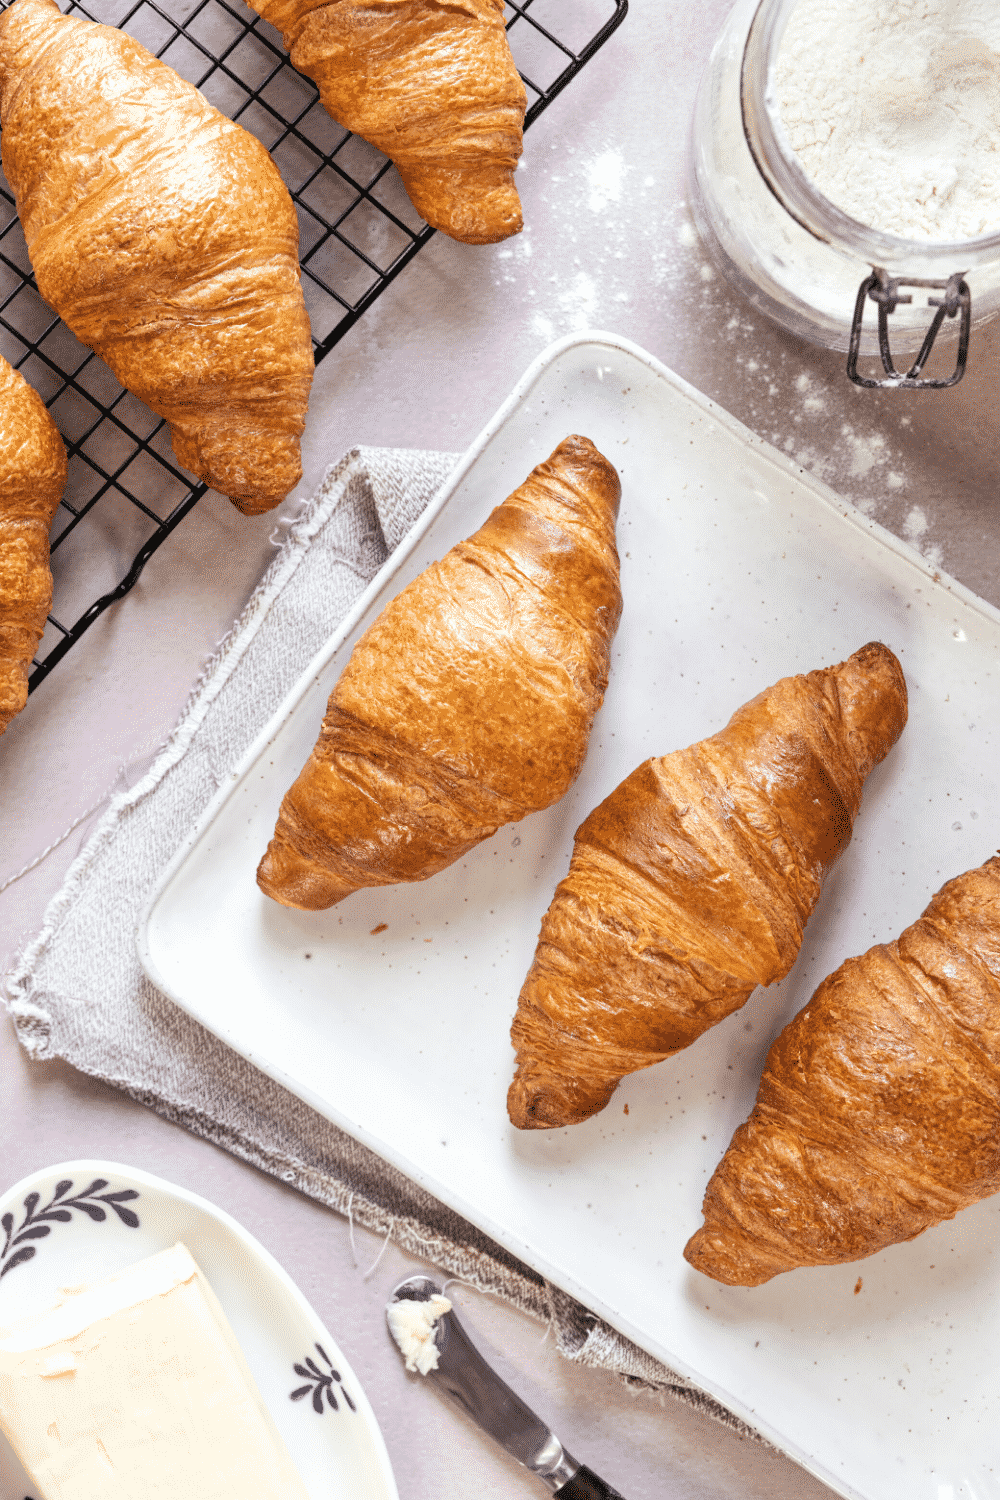 A white plate with three croissants on it. There is a black wire rack behind the plate with a croissant on it.